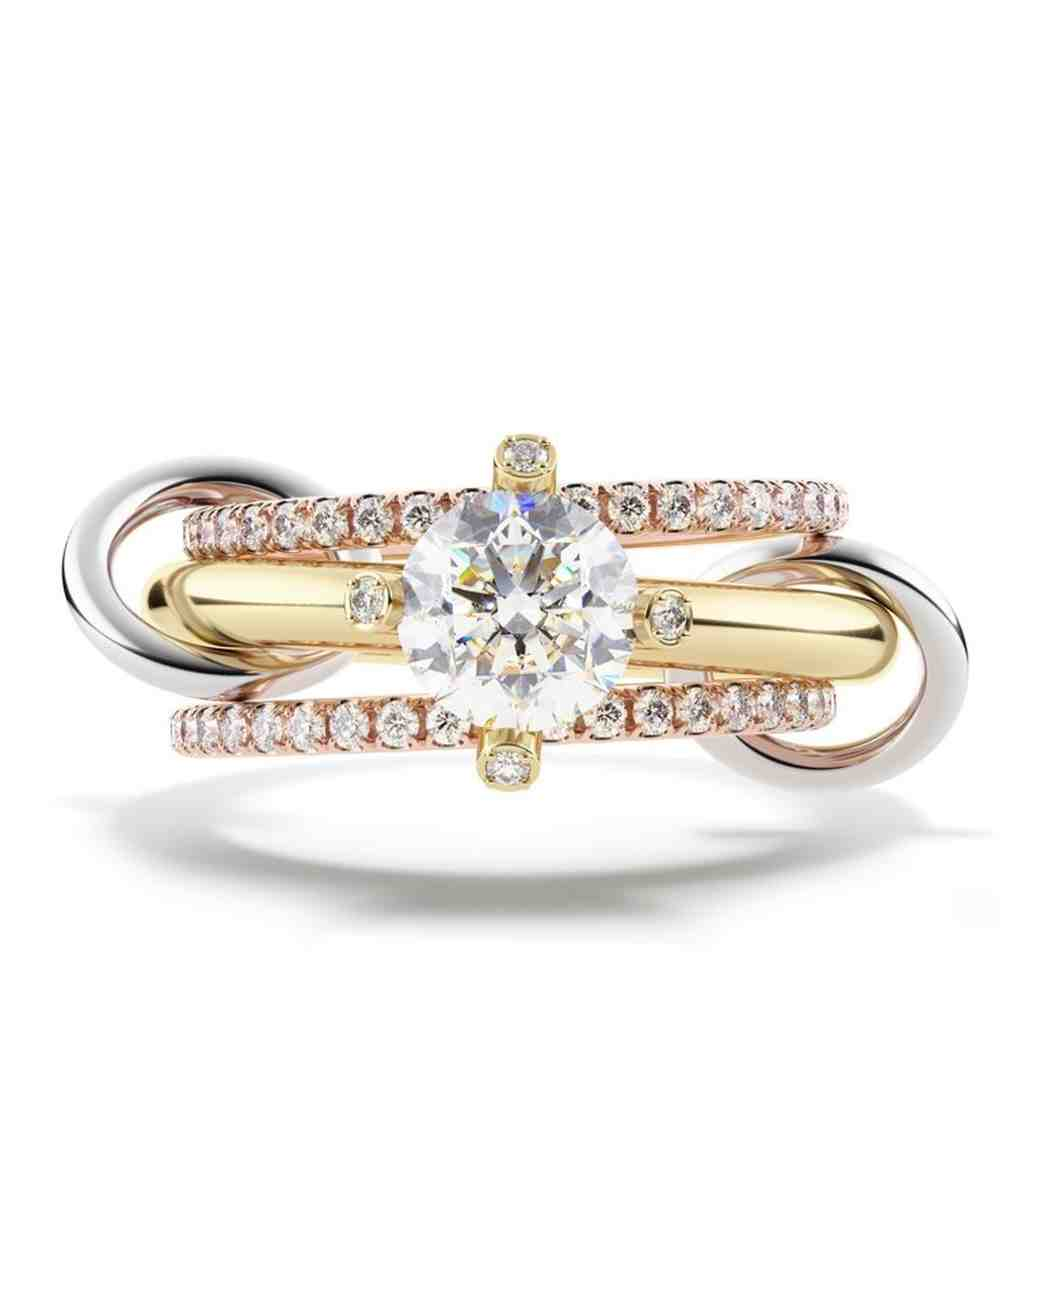 design ftlqjaw unique gold promise bands white set diamond wedding jewelry elegant rings ring engagement designs carat